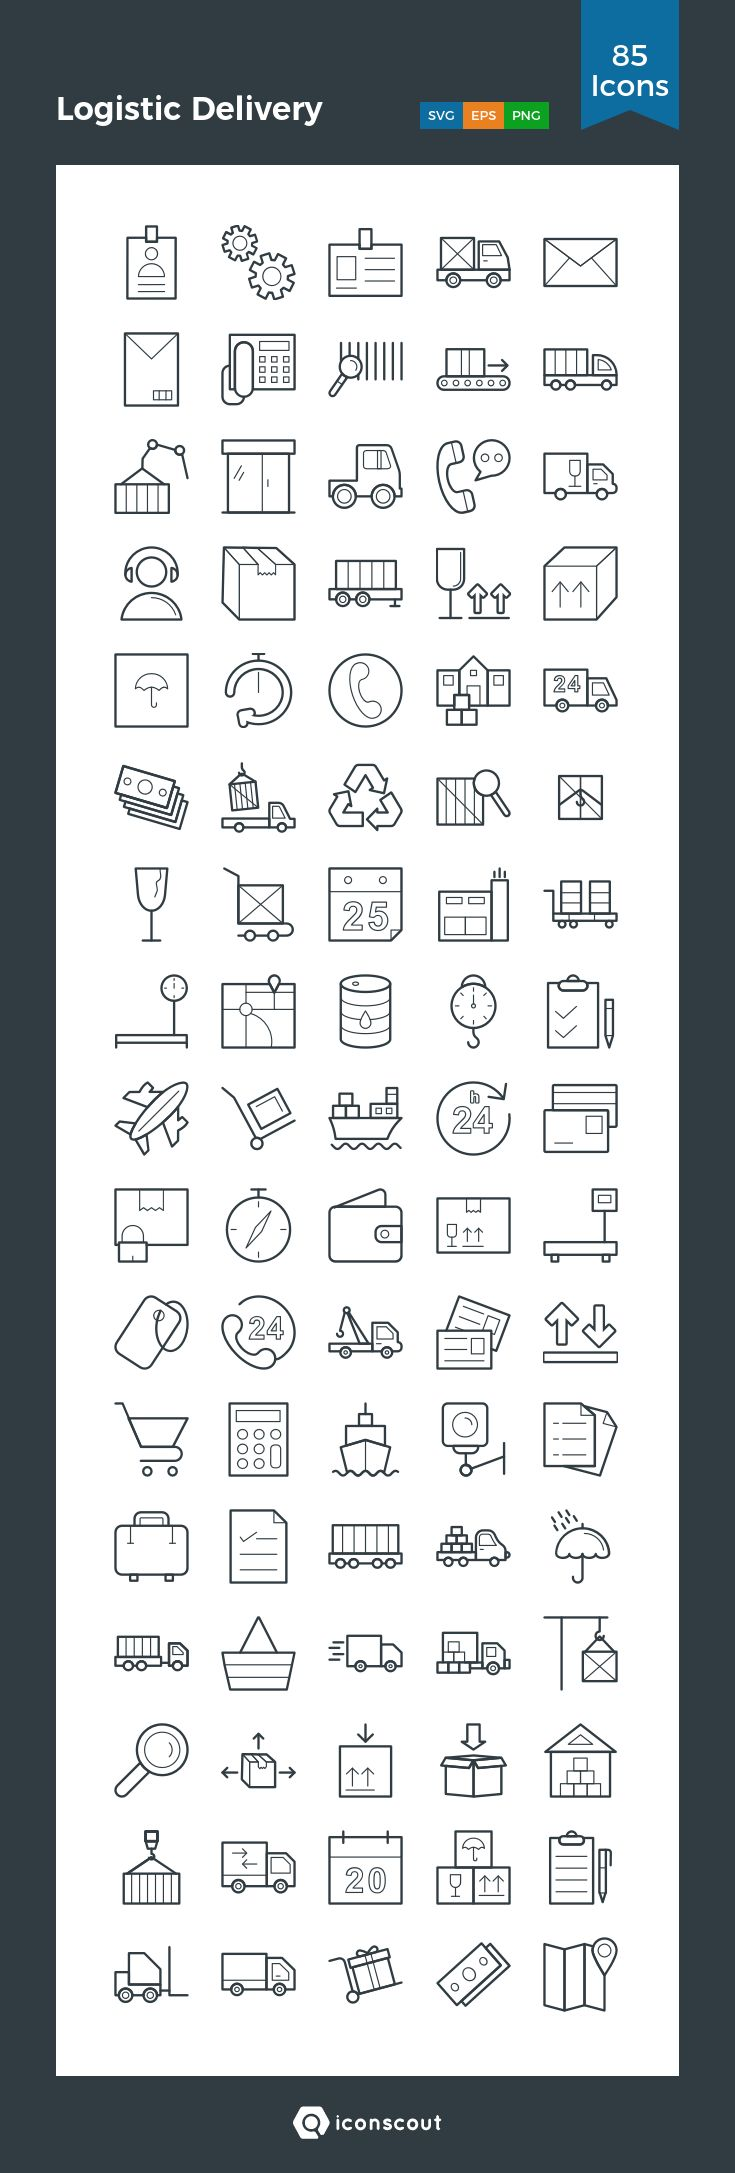 Download Logistic Delivery Icon pack - Available in SVG, PNG, EPS, AI & Icon fonts